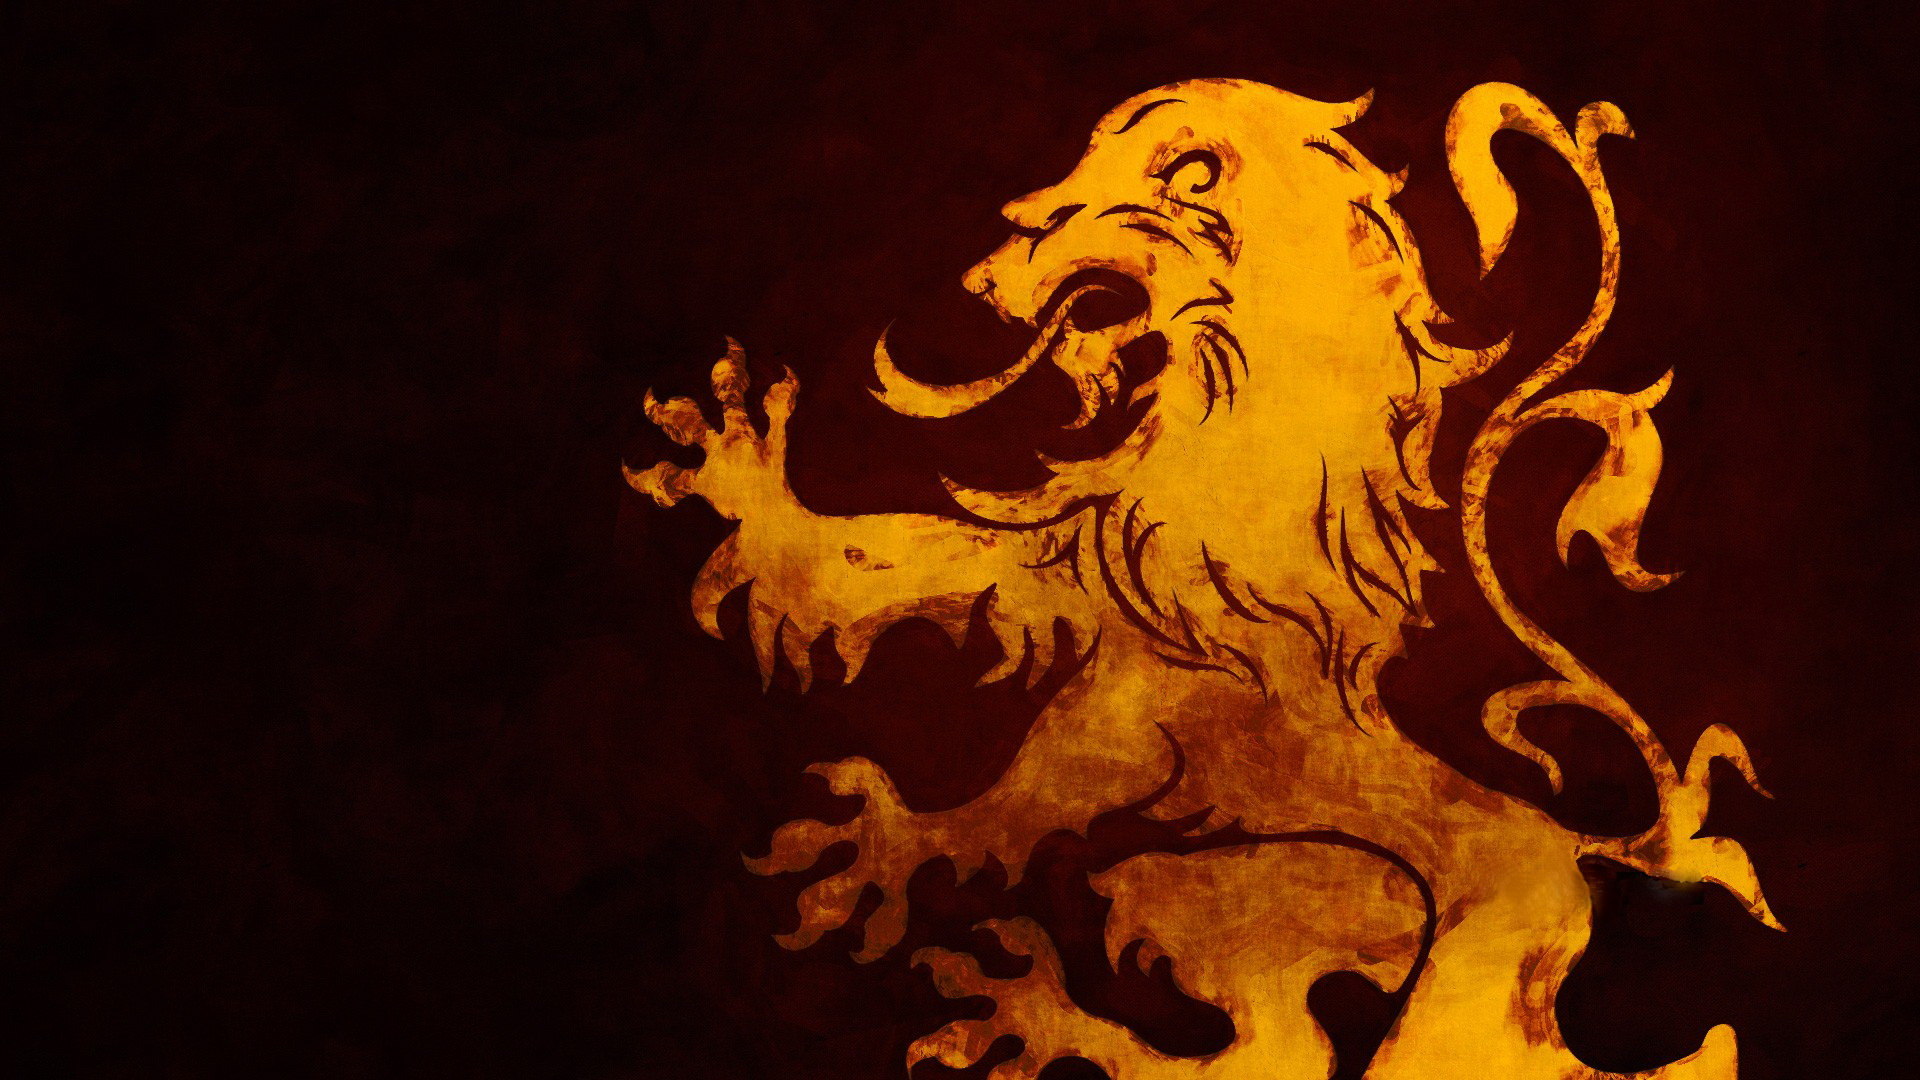 Game Of Thrones HD Wallpapers 1080p 20   Wallpaper Hd 3D 1920x1080